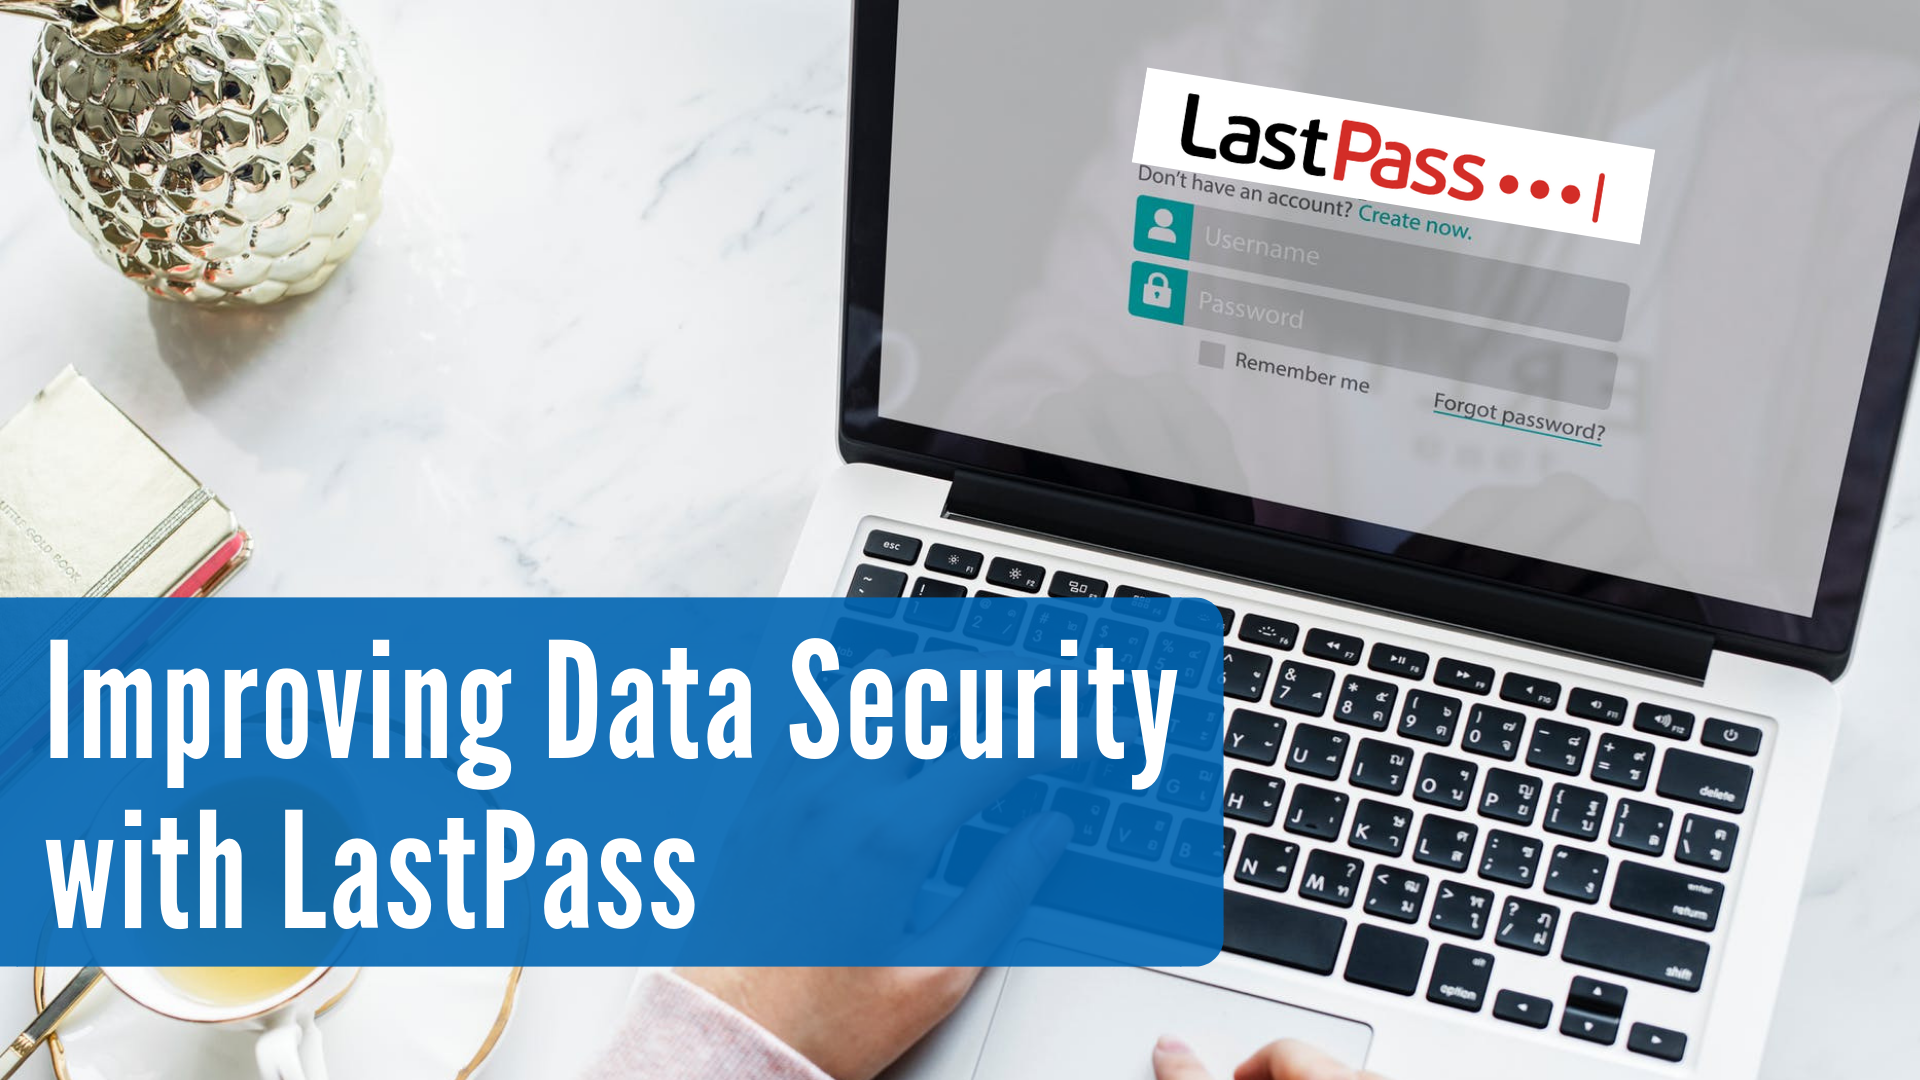 Improving Data Security with LastPass